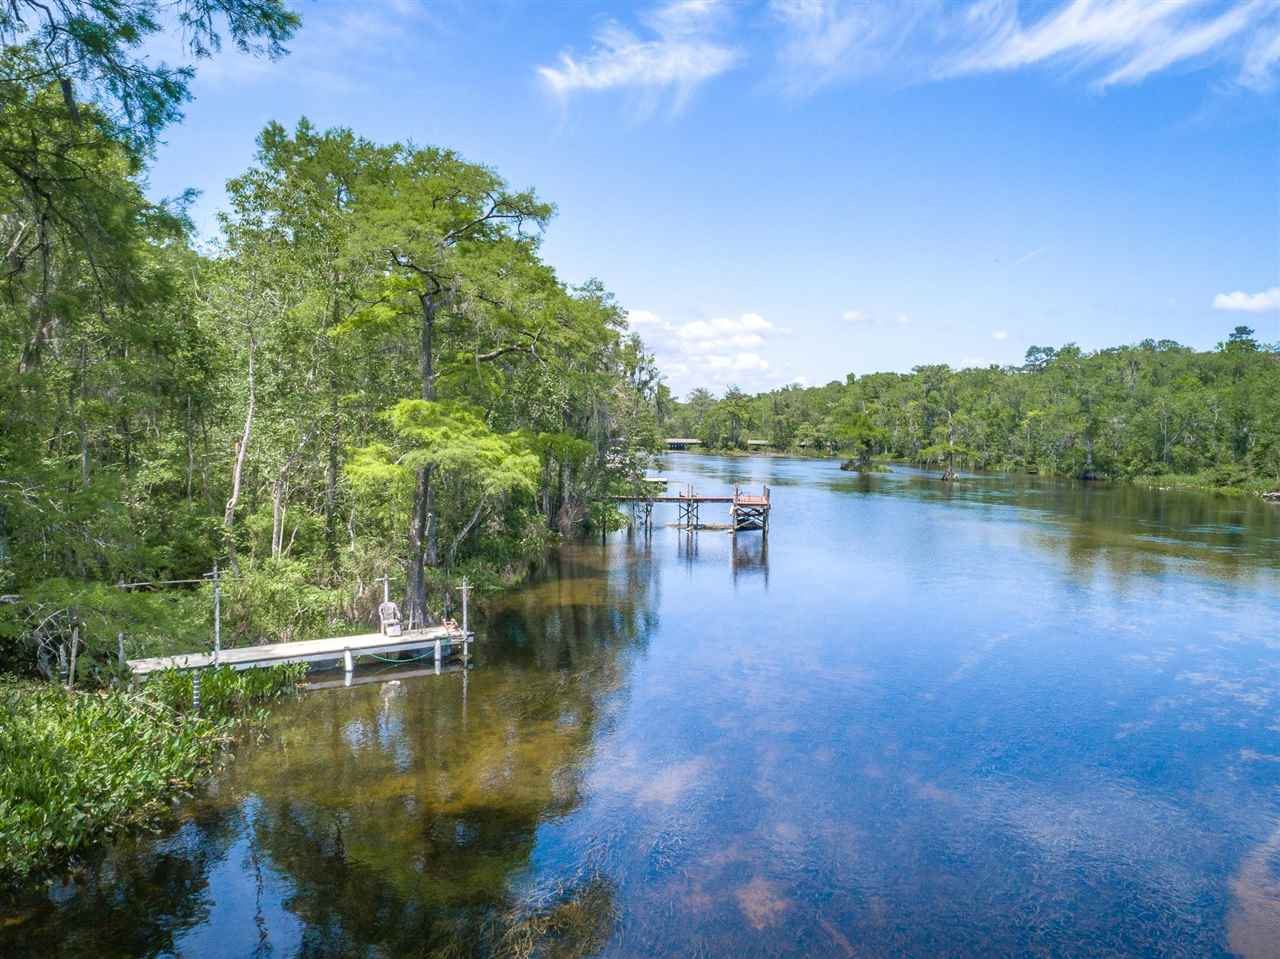 15 Palmetto Drive, Crawfordville, FL 32327 - MLS#: 331791